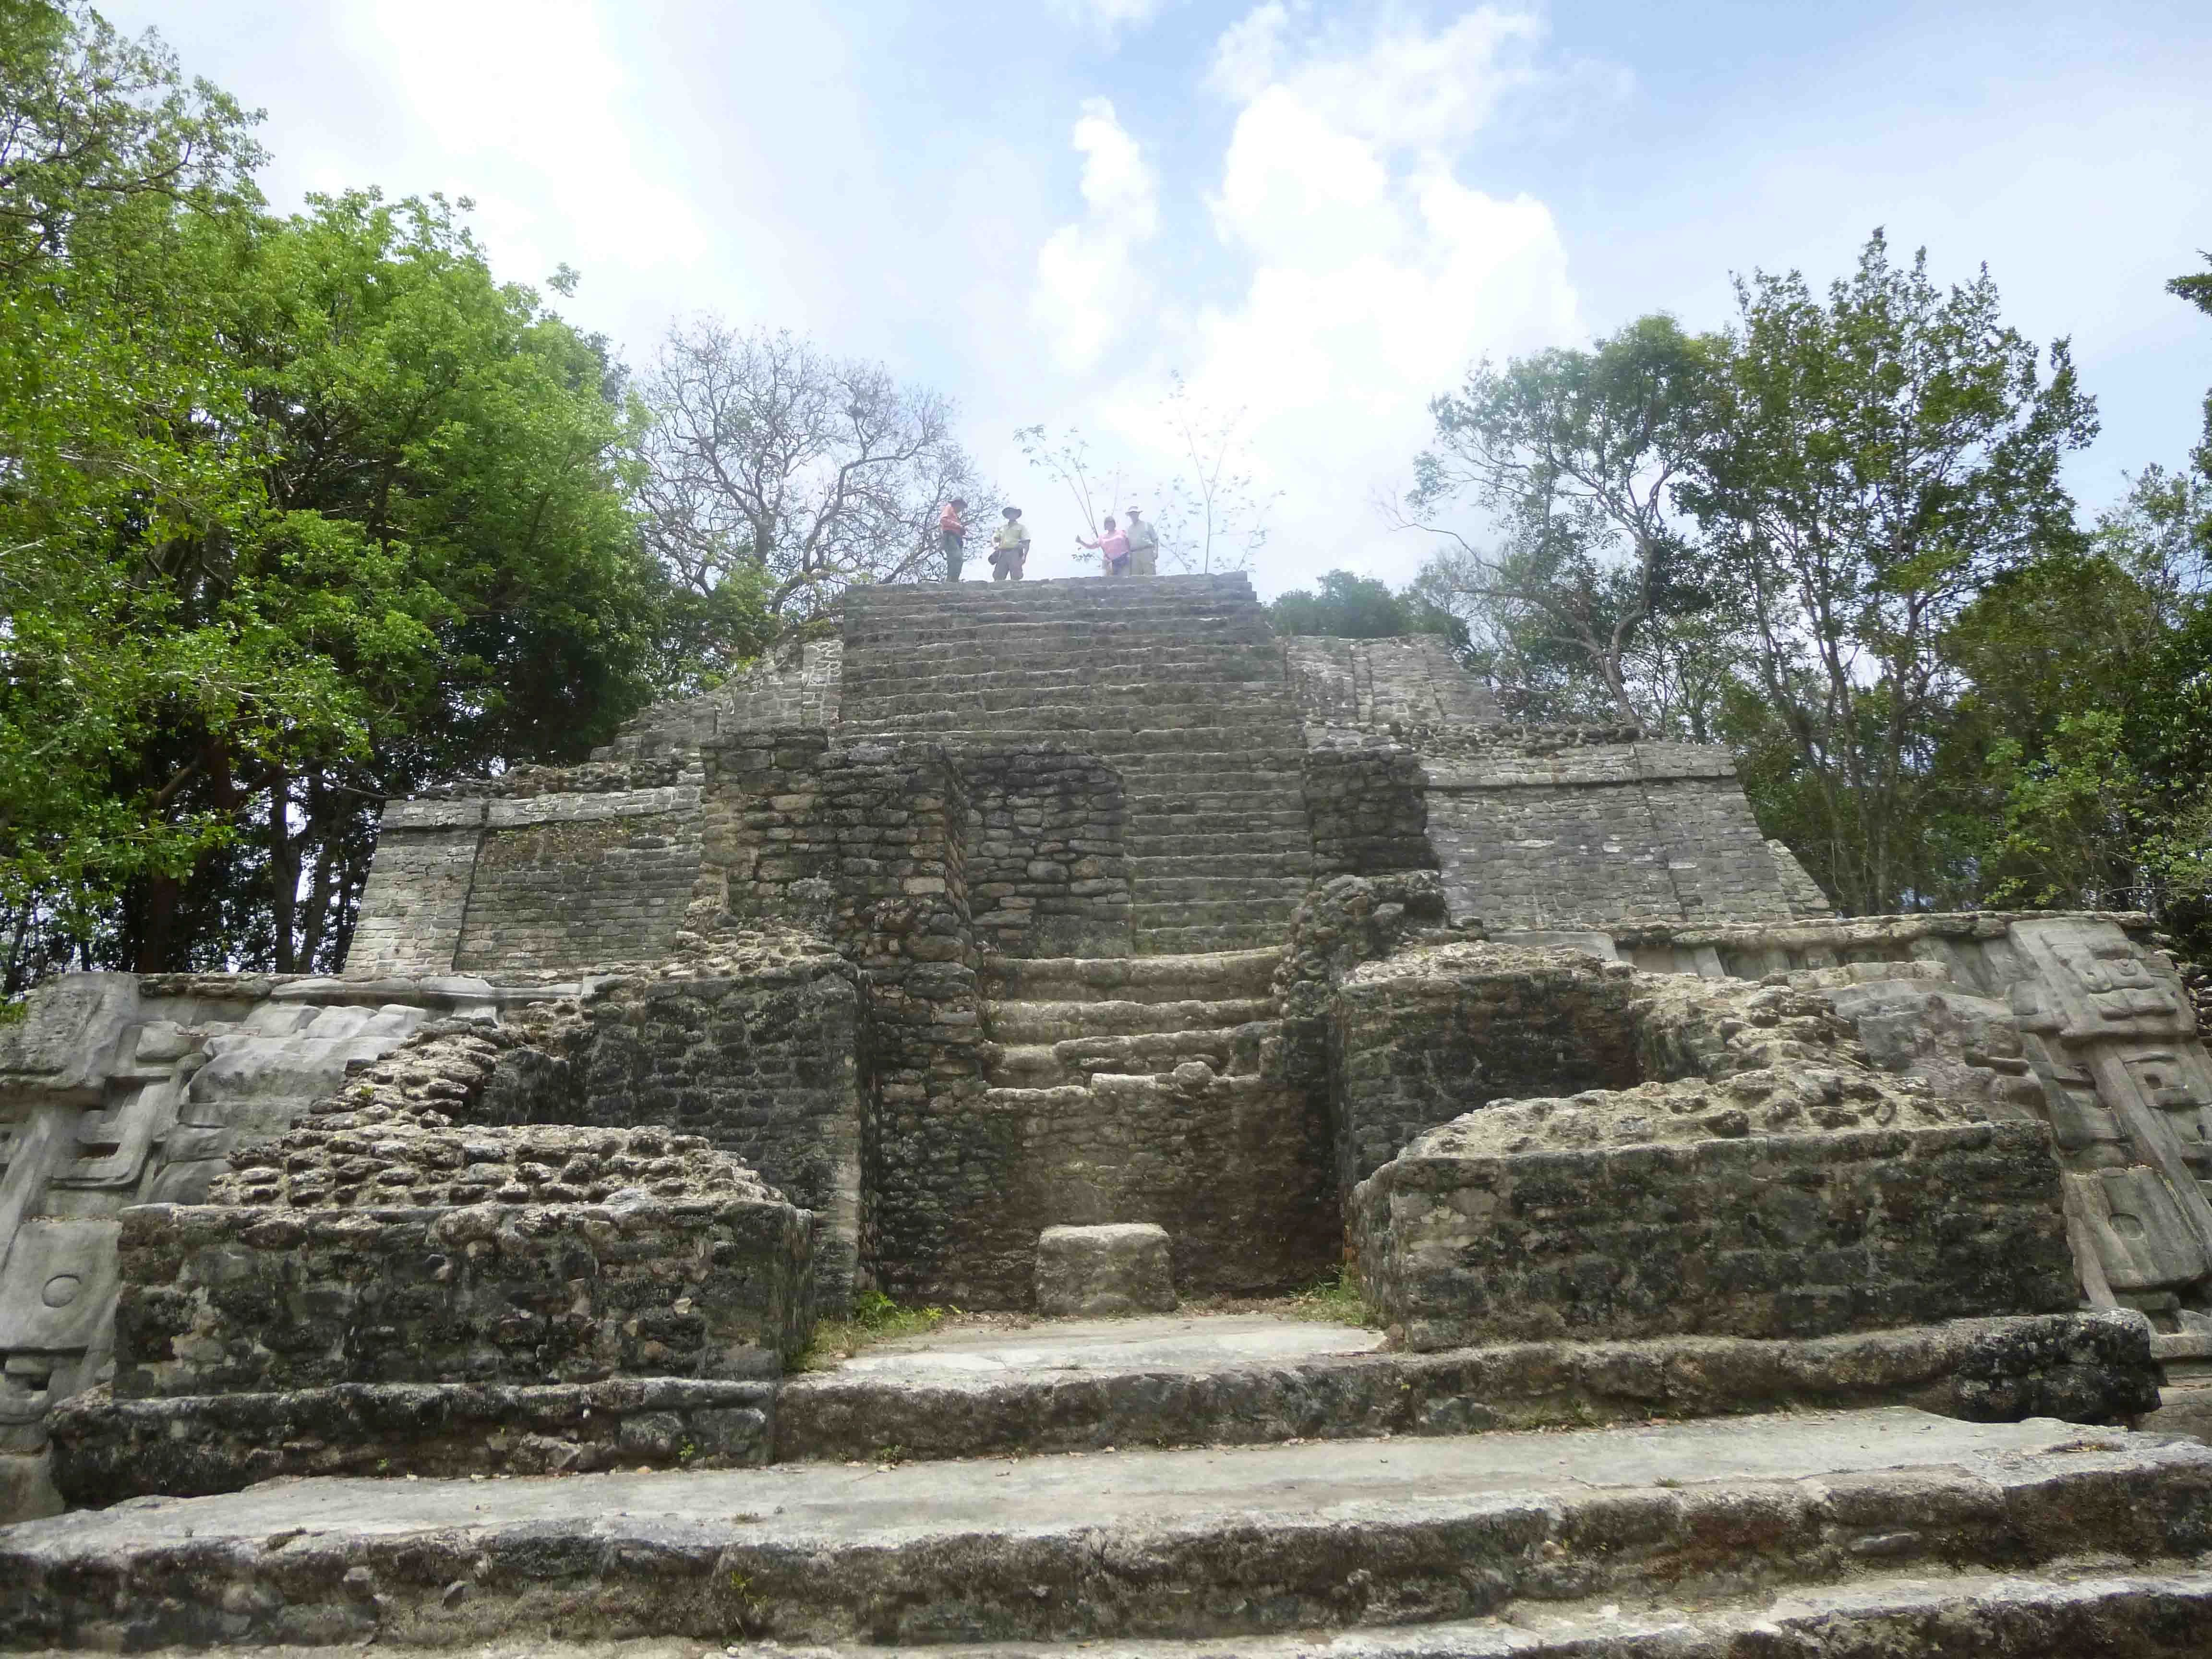 Lamanai is a Mesoamerican archaeological site, and was once a considerably sized city of the Maya civilization, located in the north of Belize, in Orange Walk District